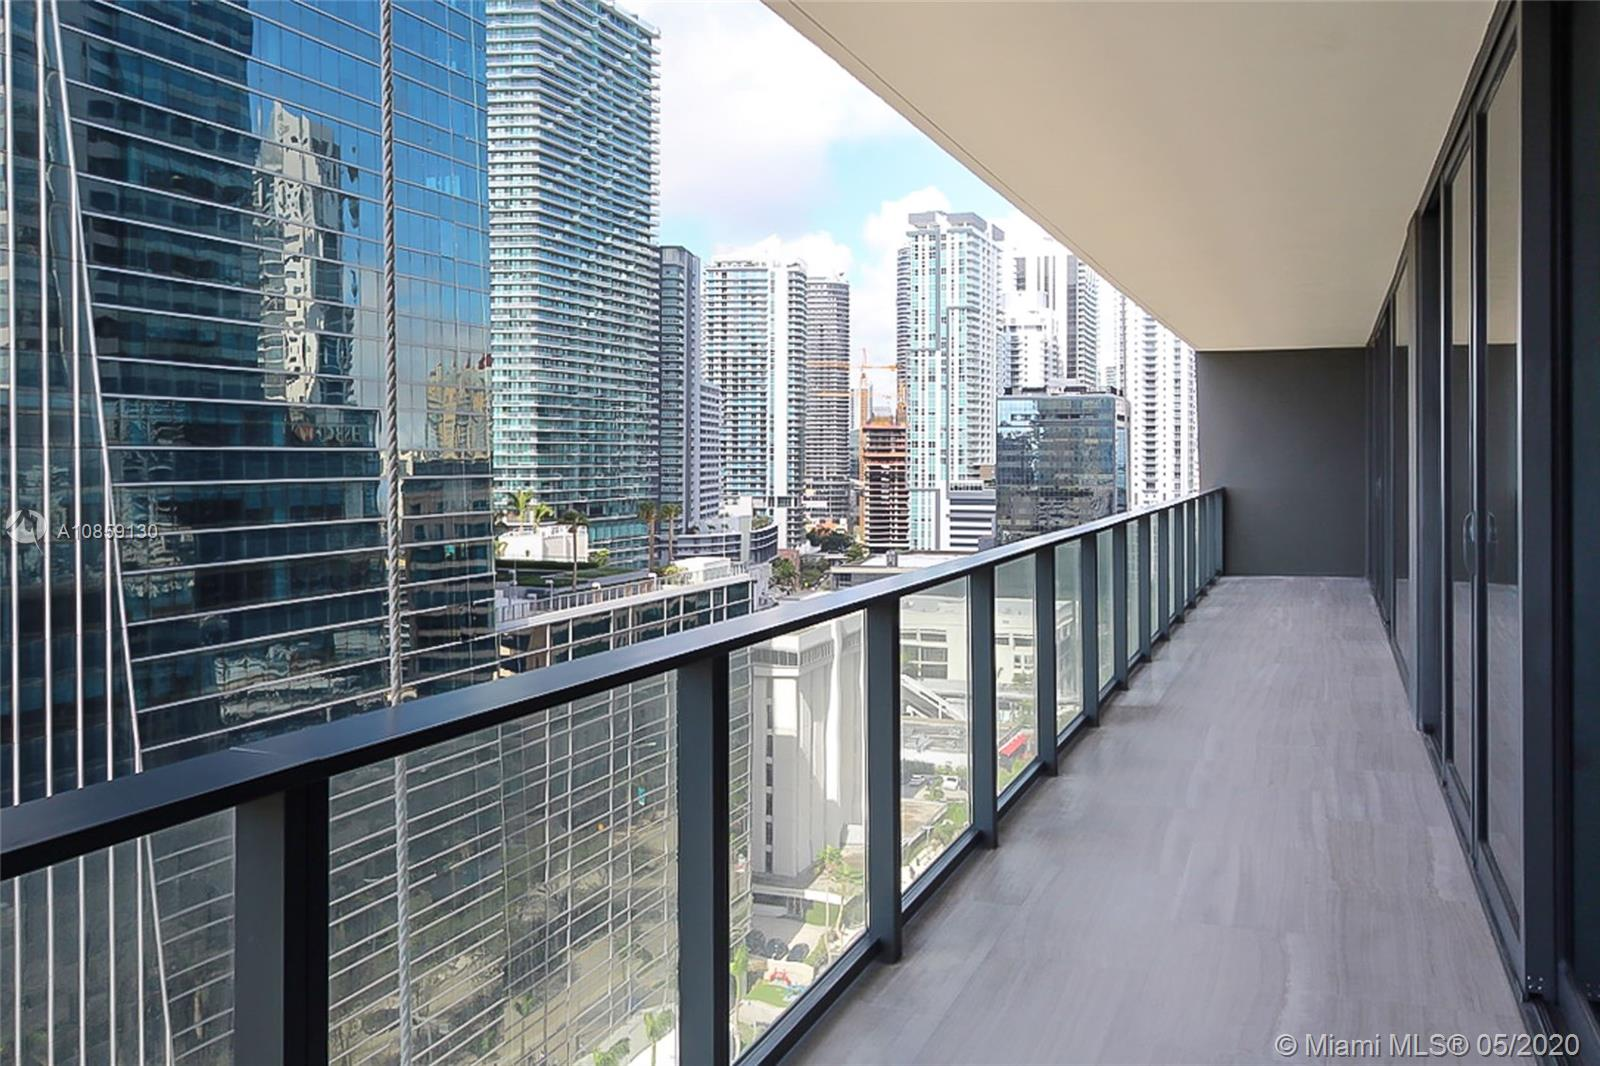 OPPORTUNITY TO OWN AT SOPHISTICATED ECHO BRICKELL. FULLY FURNISHED UNIT WITH MARBLE FLOORS. UNIT OFFERS EXPANSIVE BALCONY WITH OUTDOOR BBQ AND BEAUTIFUL SUNSET VIEWS. ENJOY TOP OF THE LINE AMENITIES AND LIVE IN THE BEST AREA OF BRICKELL!!! MOTIVATED SELLER.